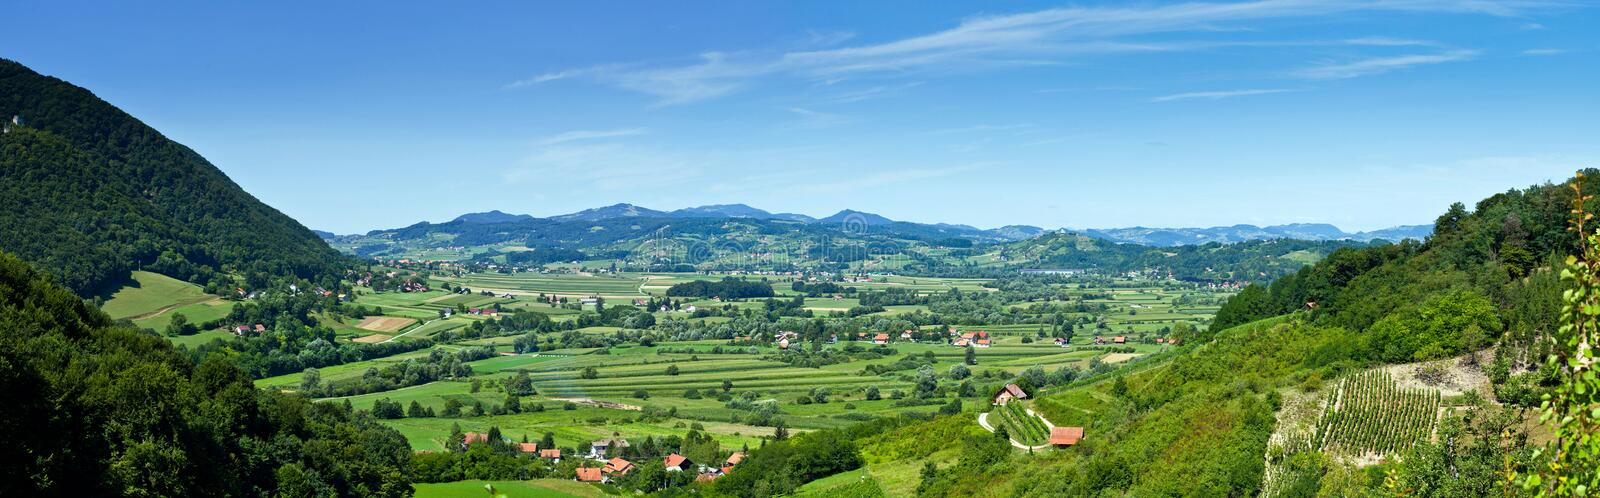 Aerial view of villages and nature stock photography